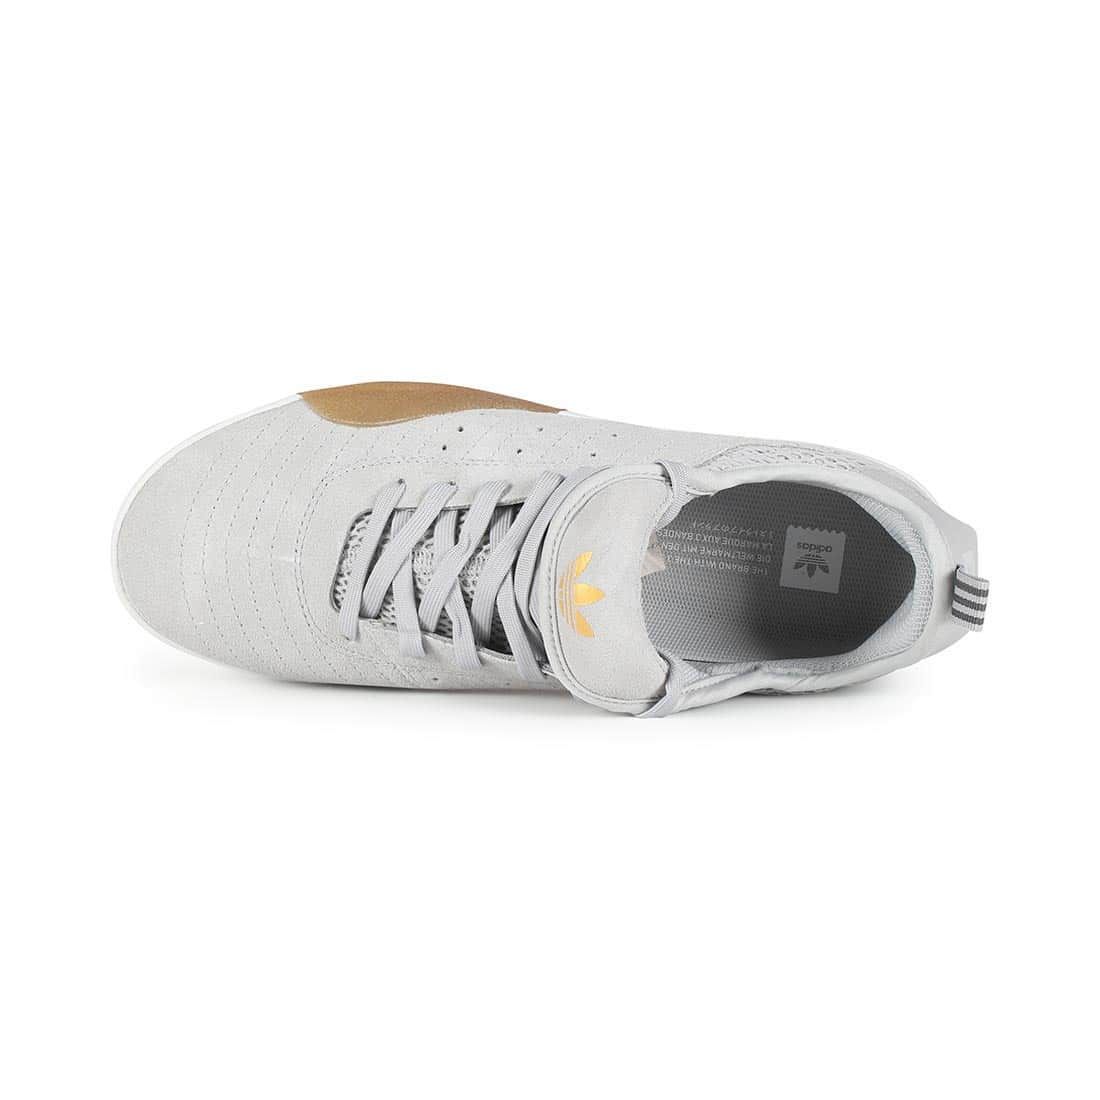 c68dc091e23 Adidas 3ST.003 Shoes - Clear Onix   Grey Five   White